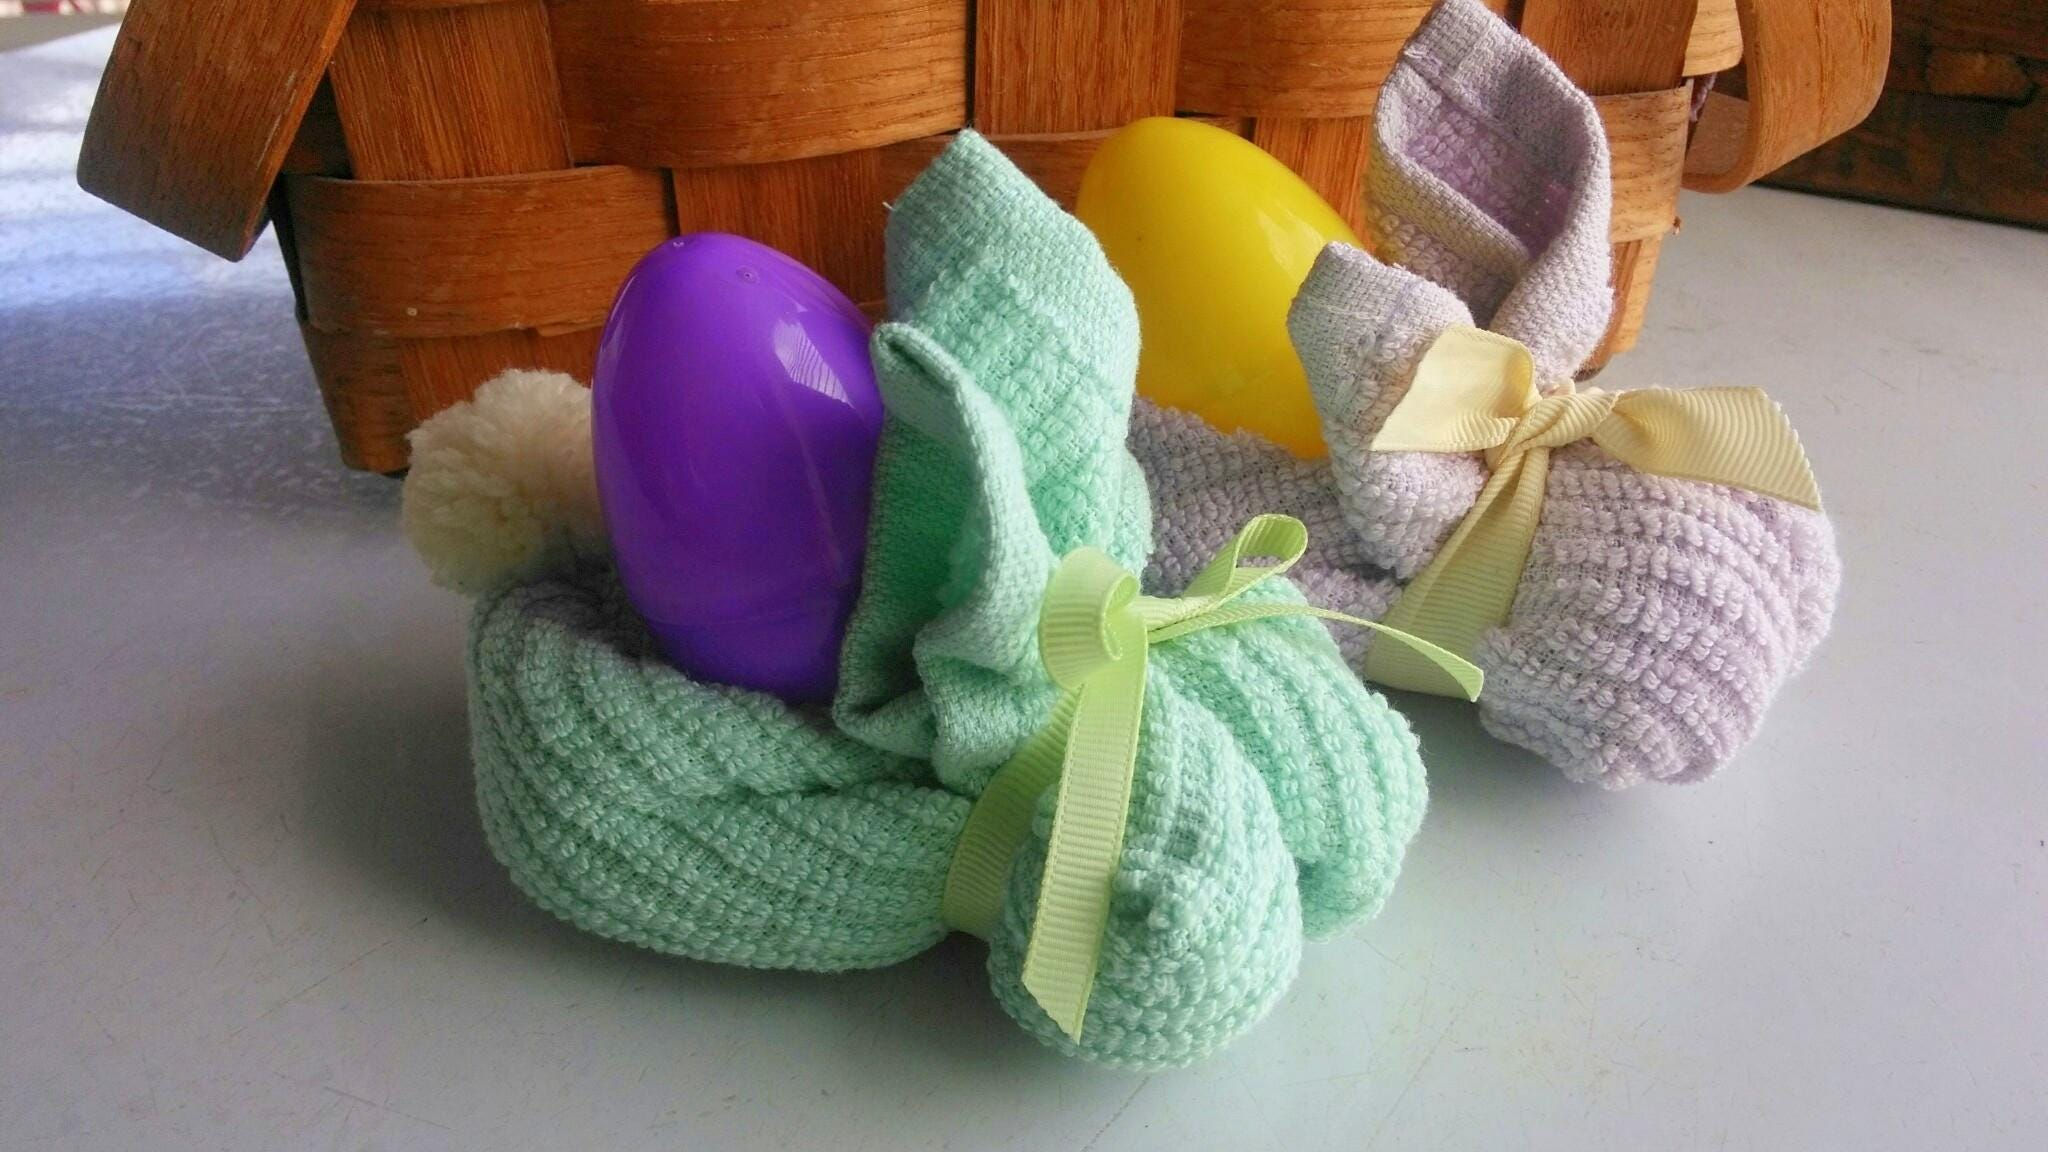 Crafts Washcloth Bunnies And Sewn Egg Cards Easy Fun